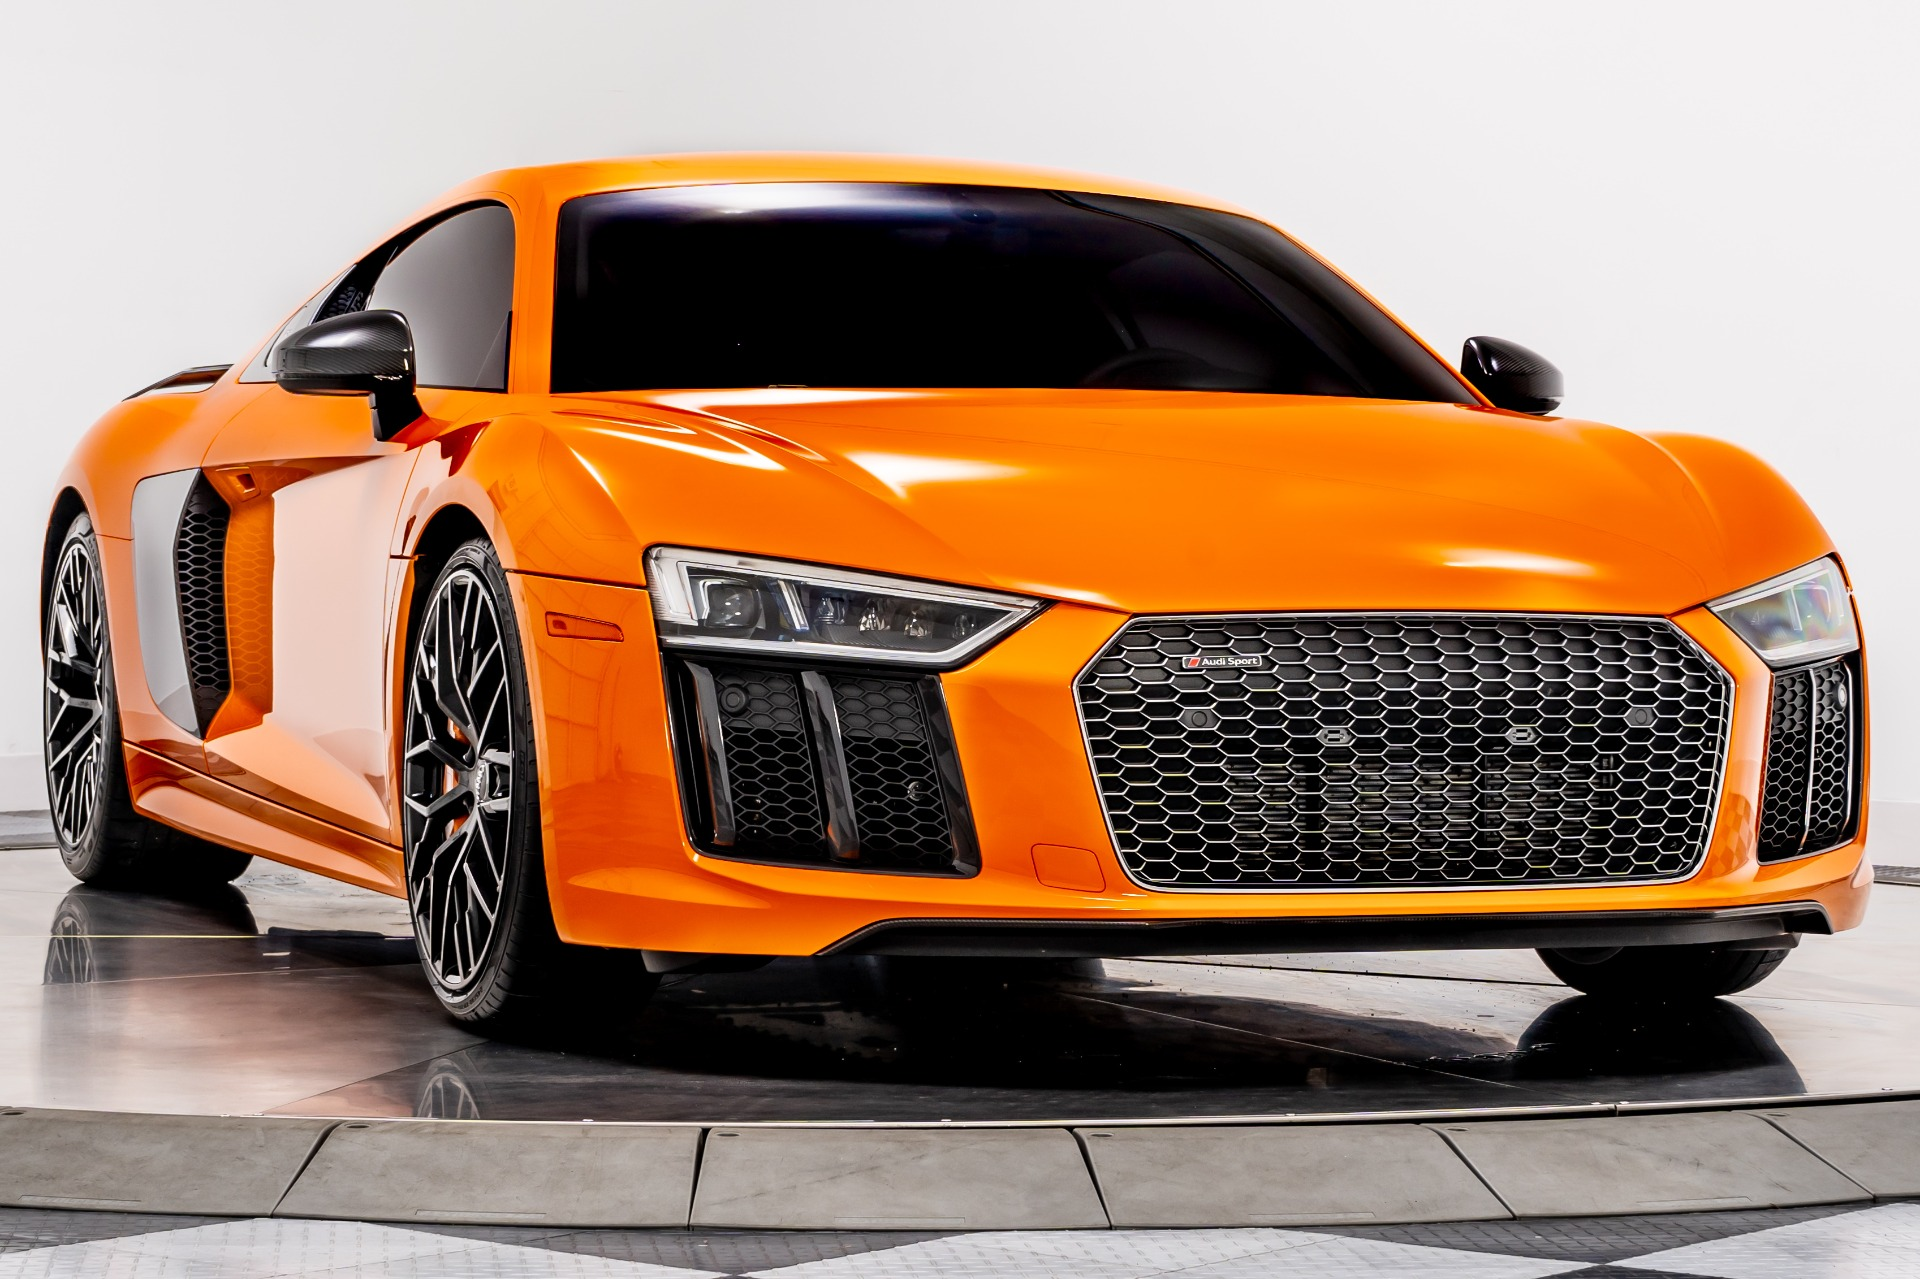 Used 2018 Audi R8 V10 Plus For Sale 174 900 Marshall Goldman Cleveland Stock W21356